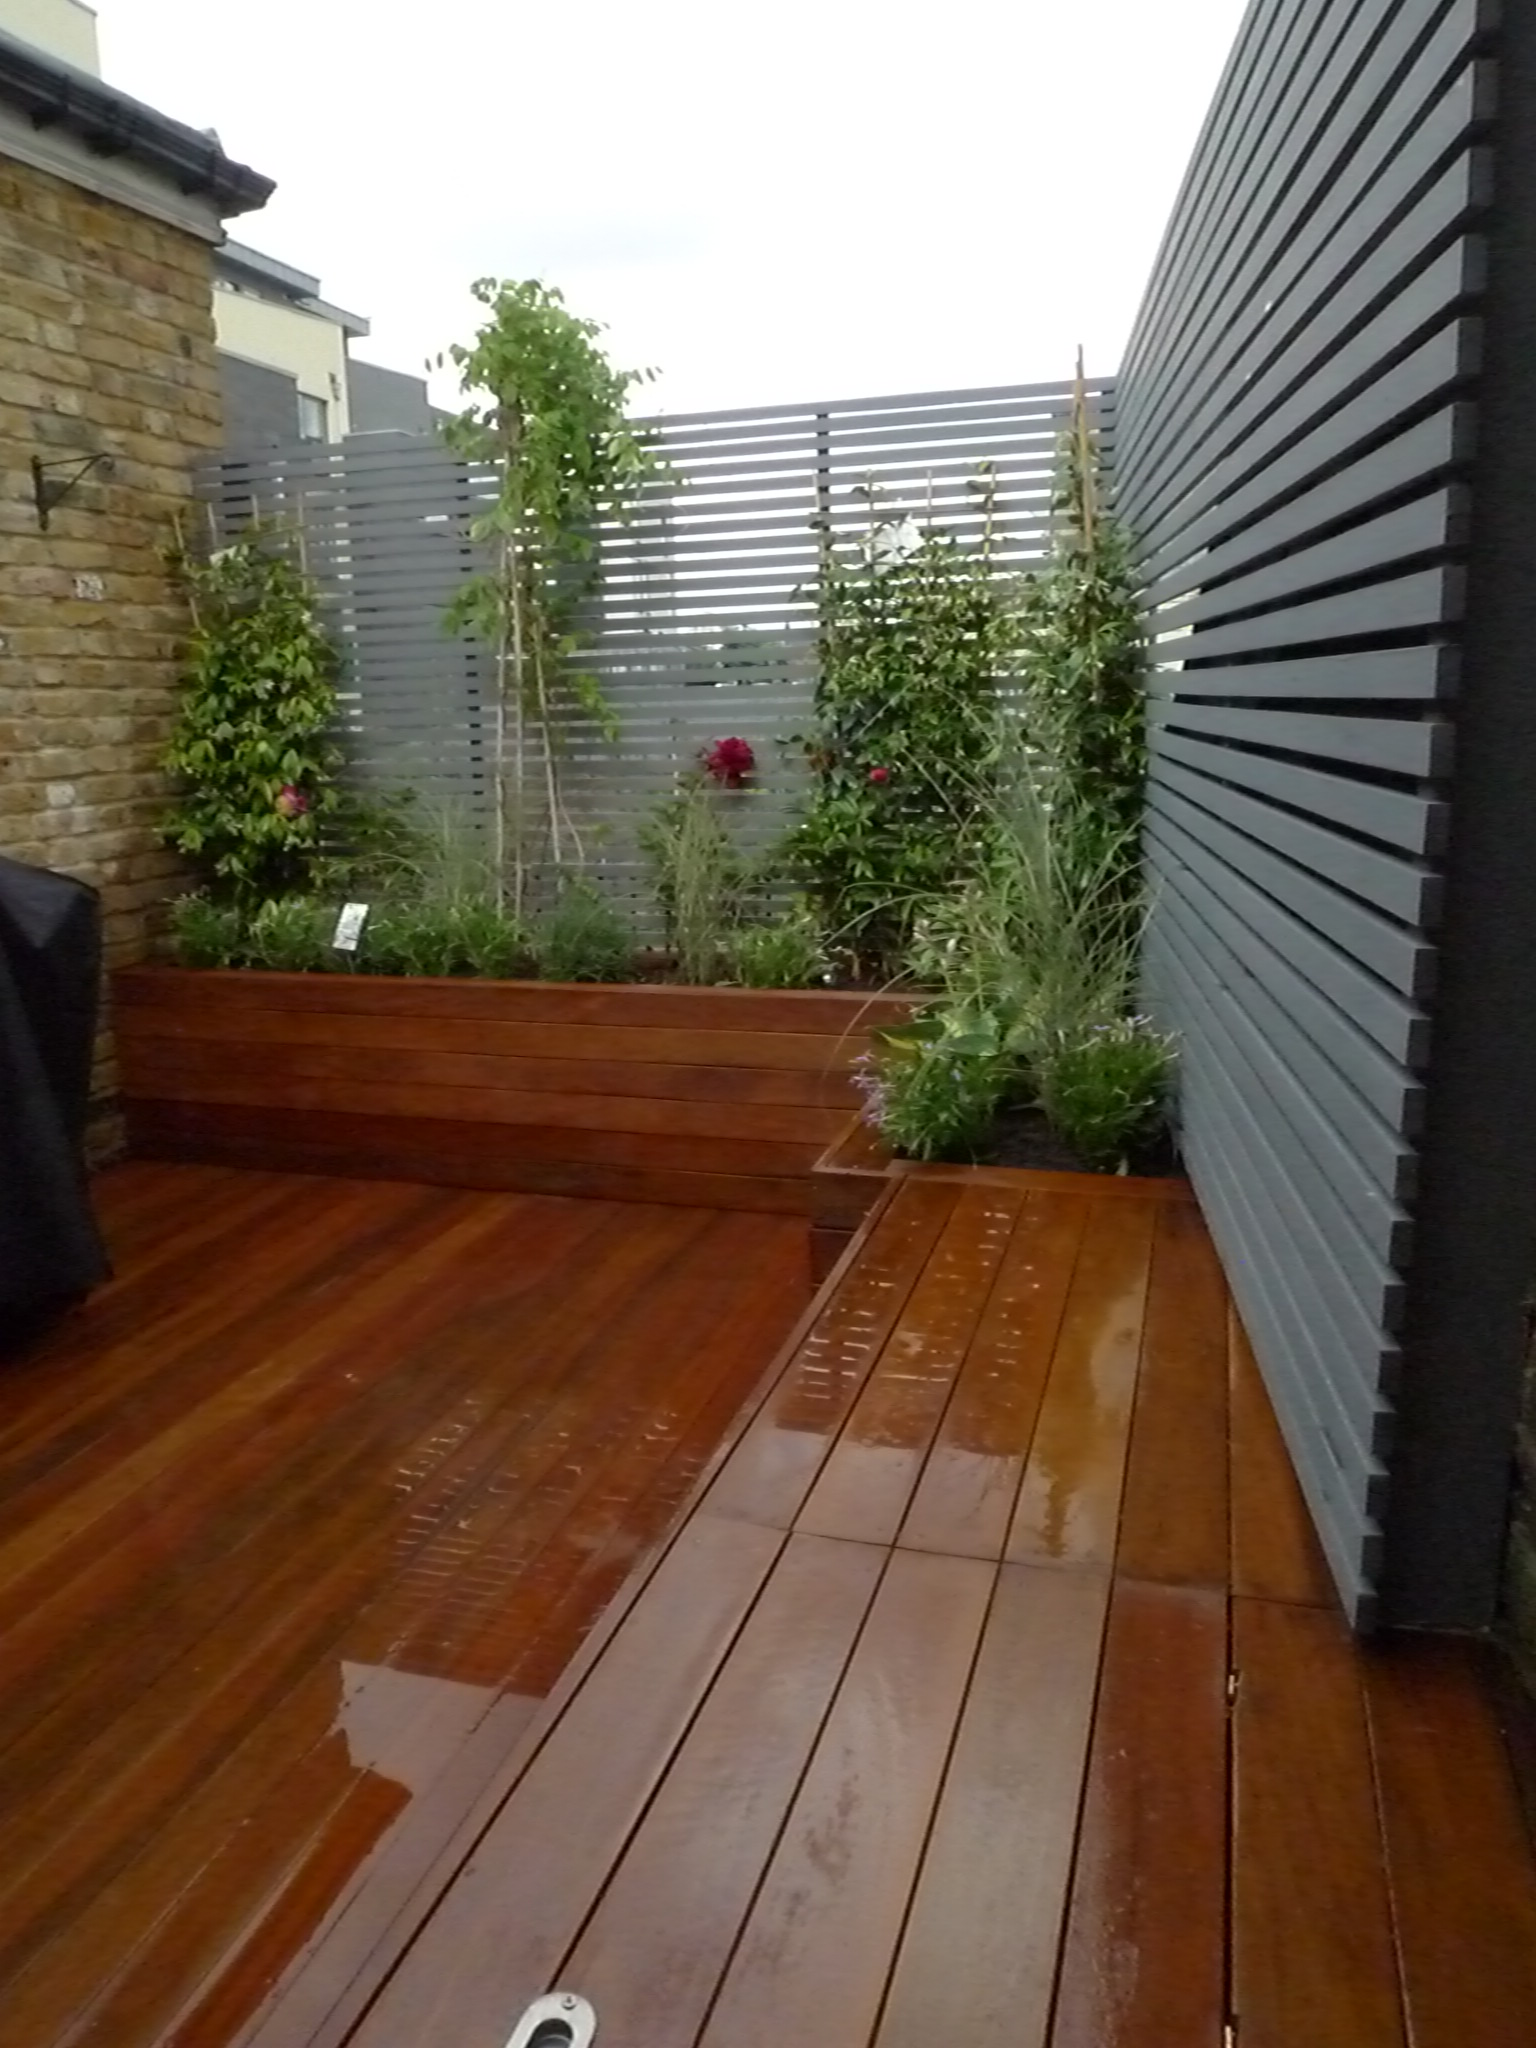 London small roof garden ideas | London Garden Design